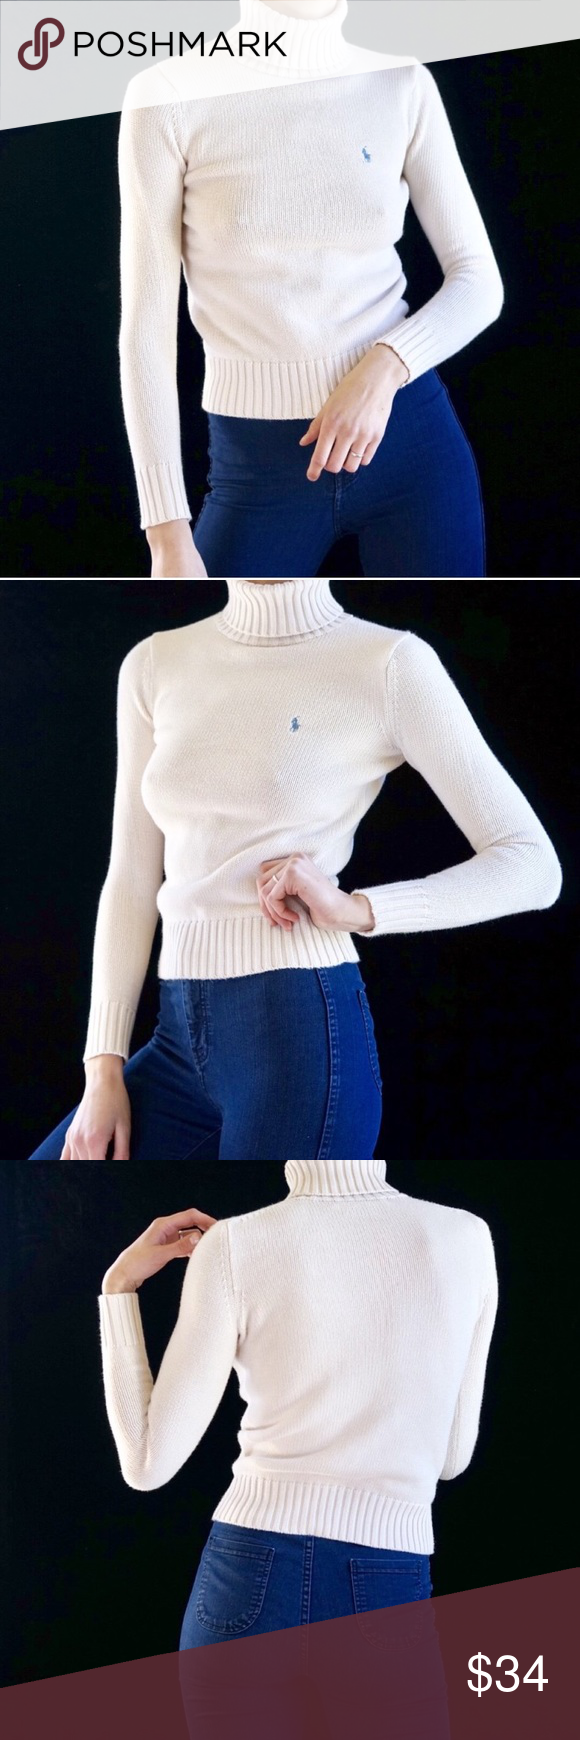 60c59a879a9 ... white turtleneck sweater Cream cotton thick knit turtleneck sweater  from Ralph Lauren. Light blue insignia on the chest. Best fits XS-S up to  size 2 due ...